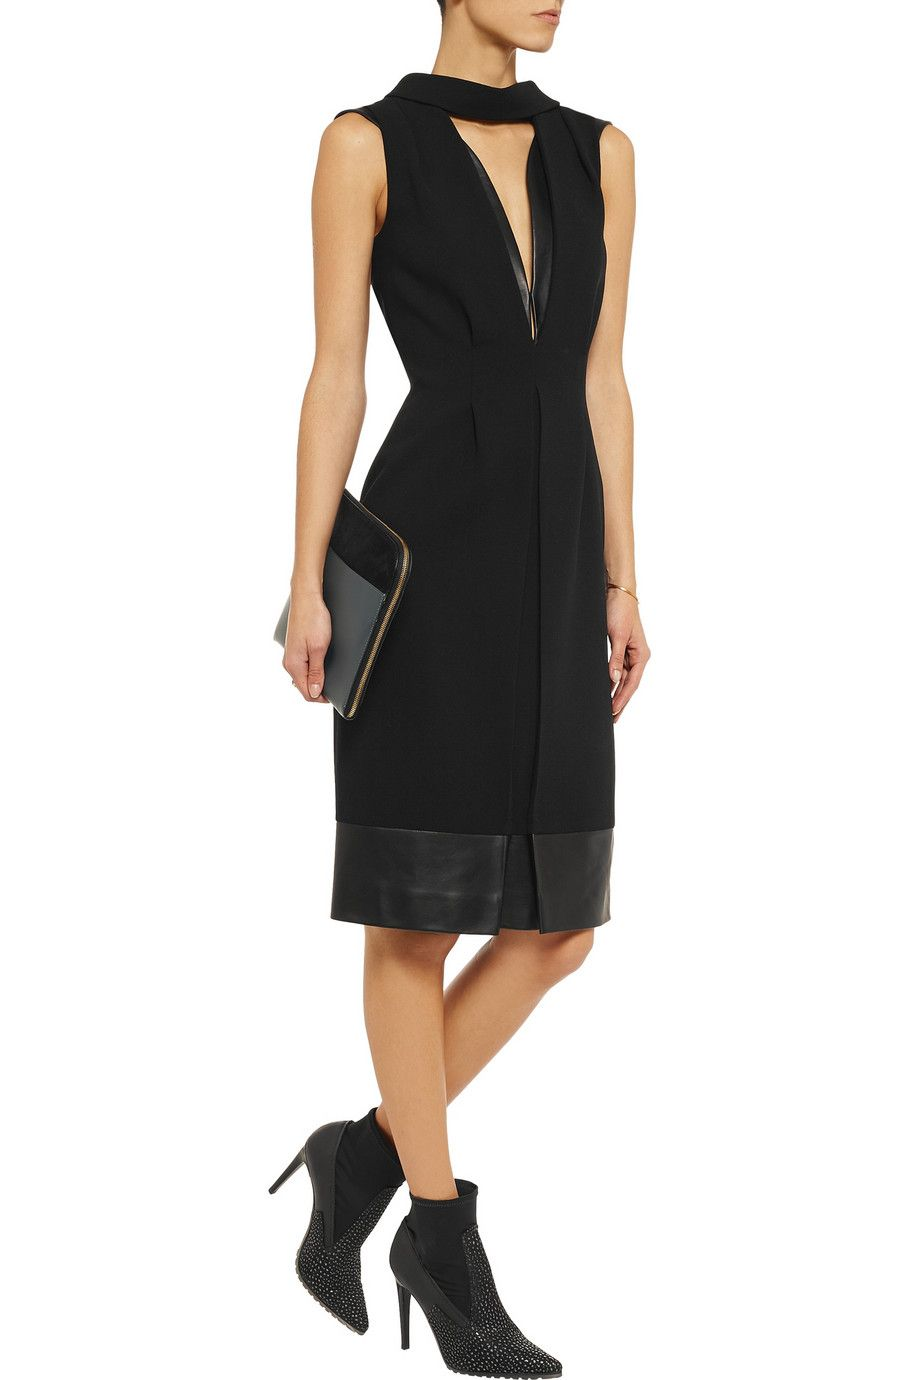 B is for black! Christopher Kane Leather-trimmed wool-crepe dress #THEOUTNETabc #SeeItShopIt